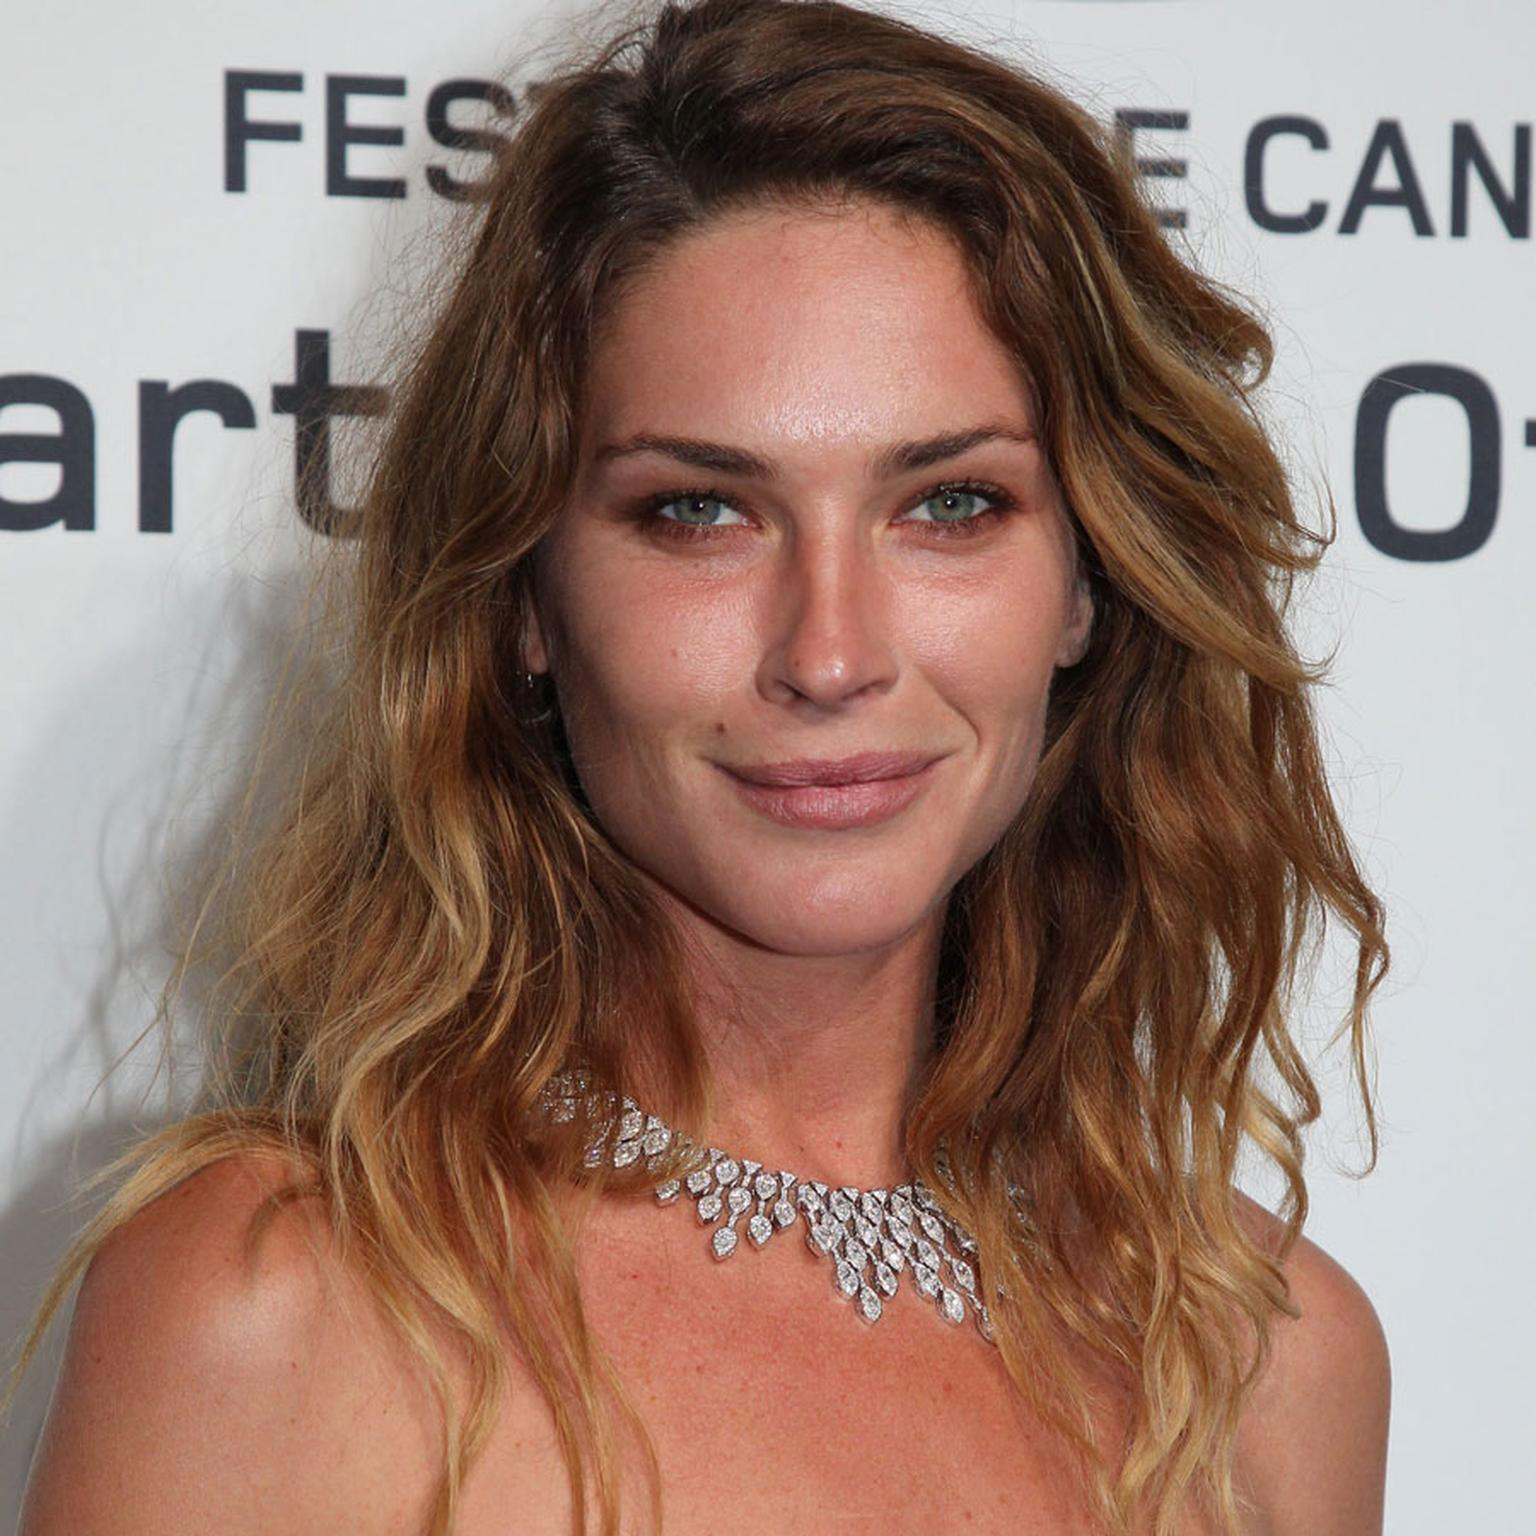 Erin Wasson chopard at cannes Main pic